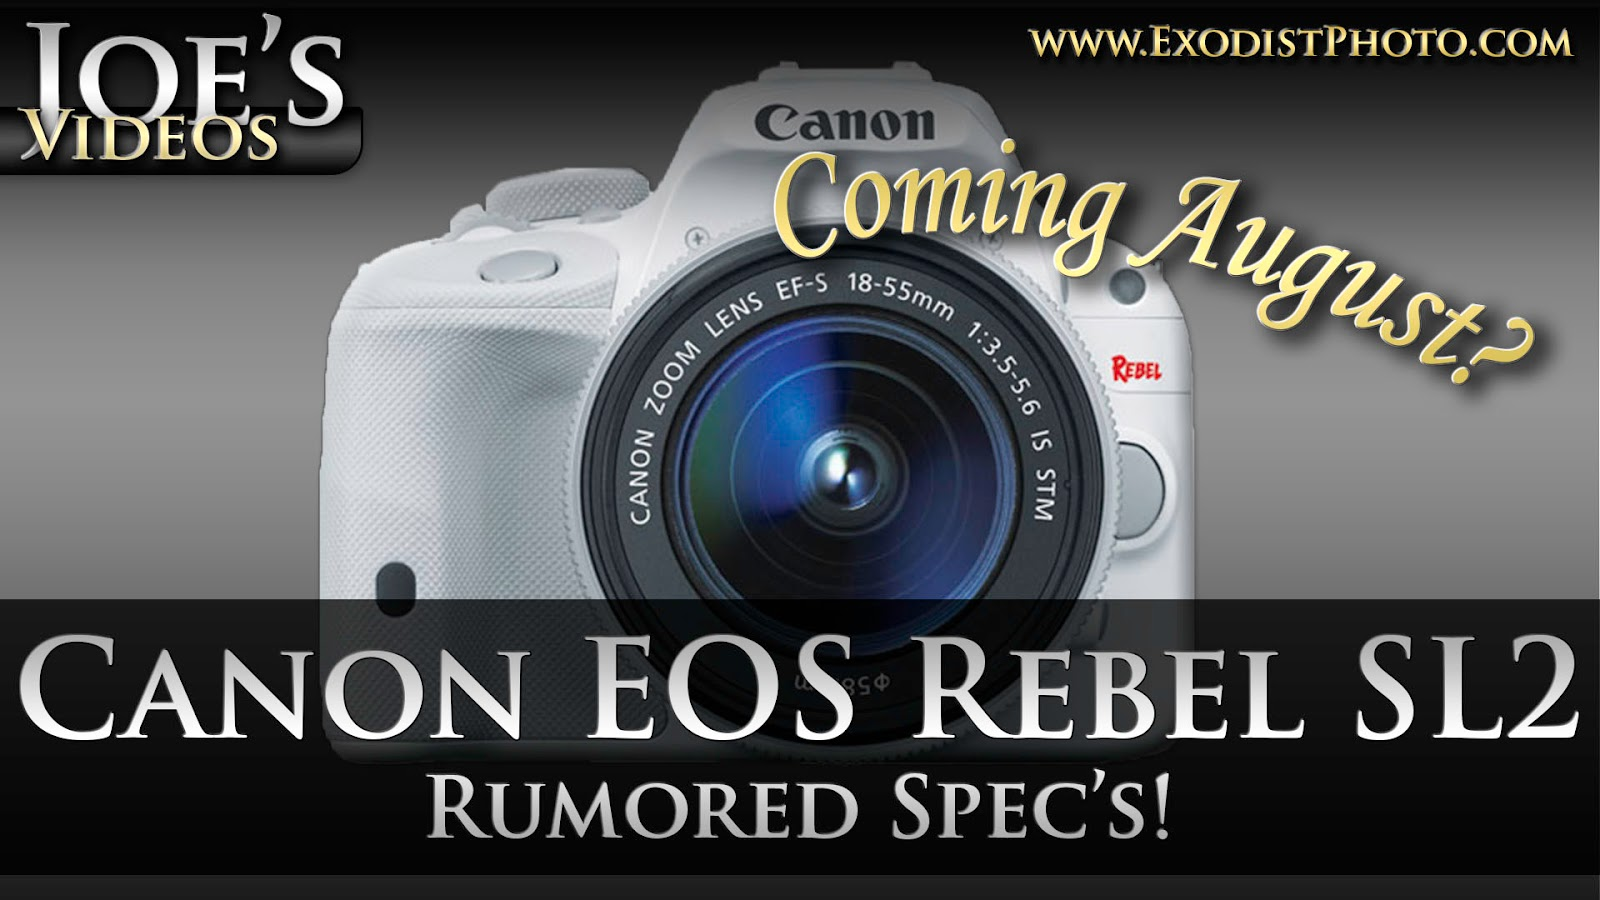 Canon EOS Rebel SL2 (110D, 150D) Coming This August, Rumored